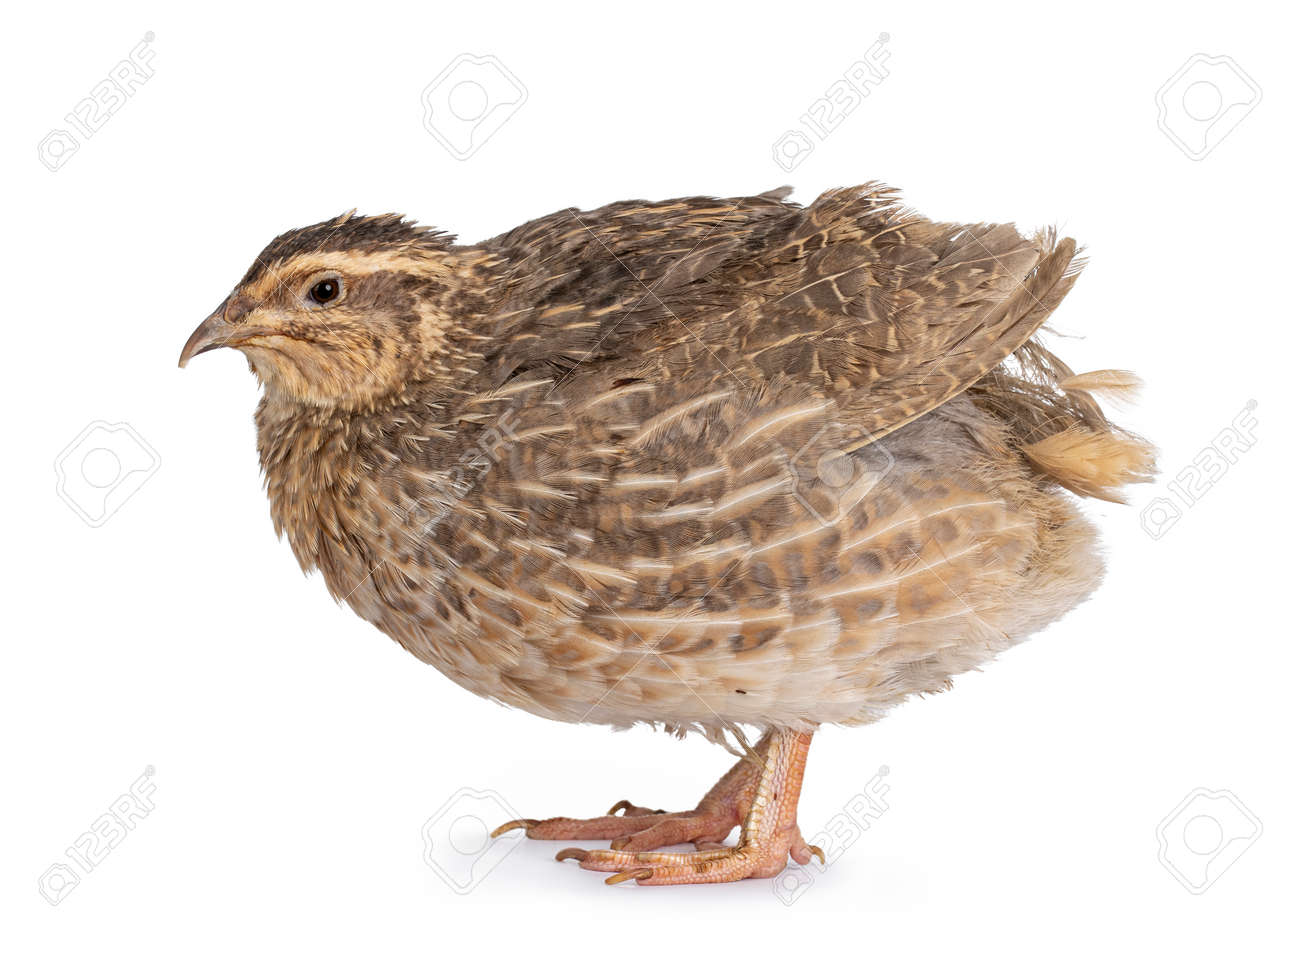 Pastel or blue Quail bird, standing side ways. Looking away from camera. isolated on a white background. - 173044799